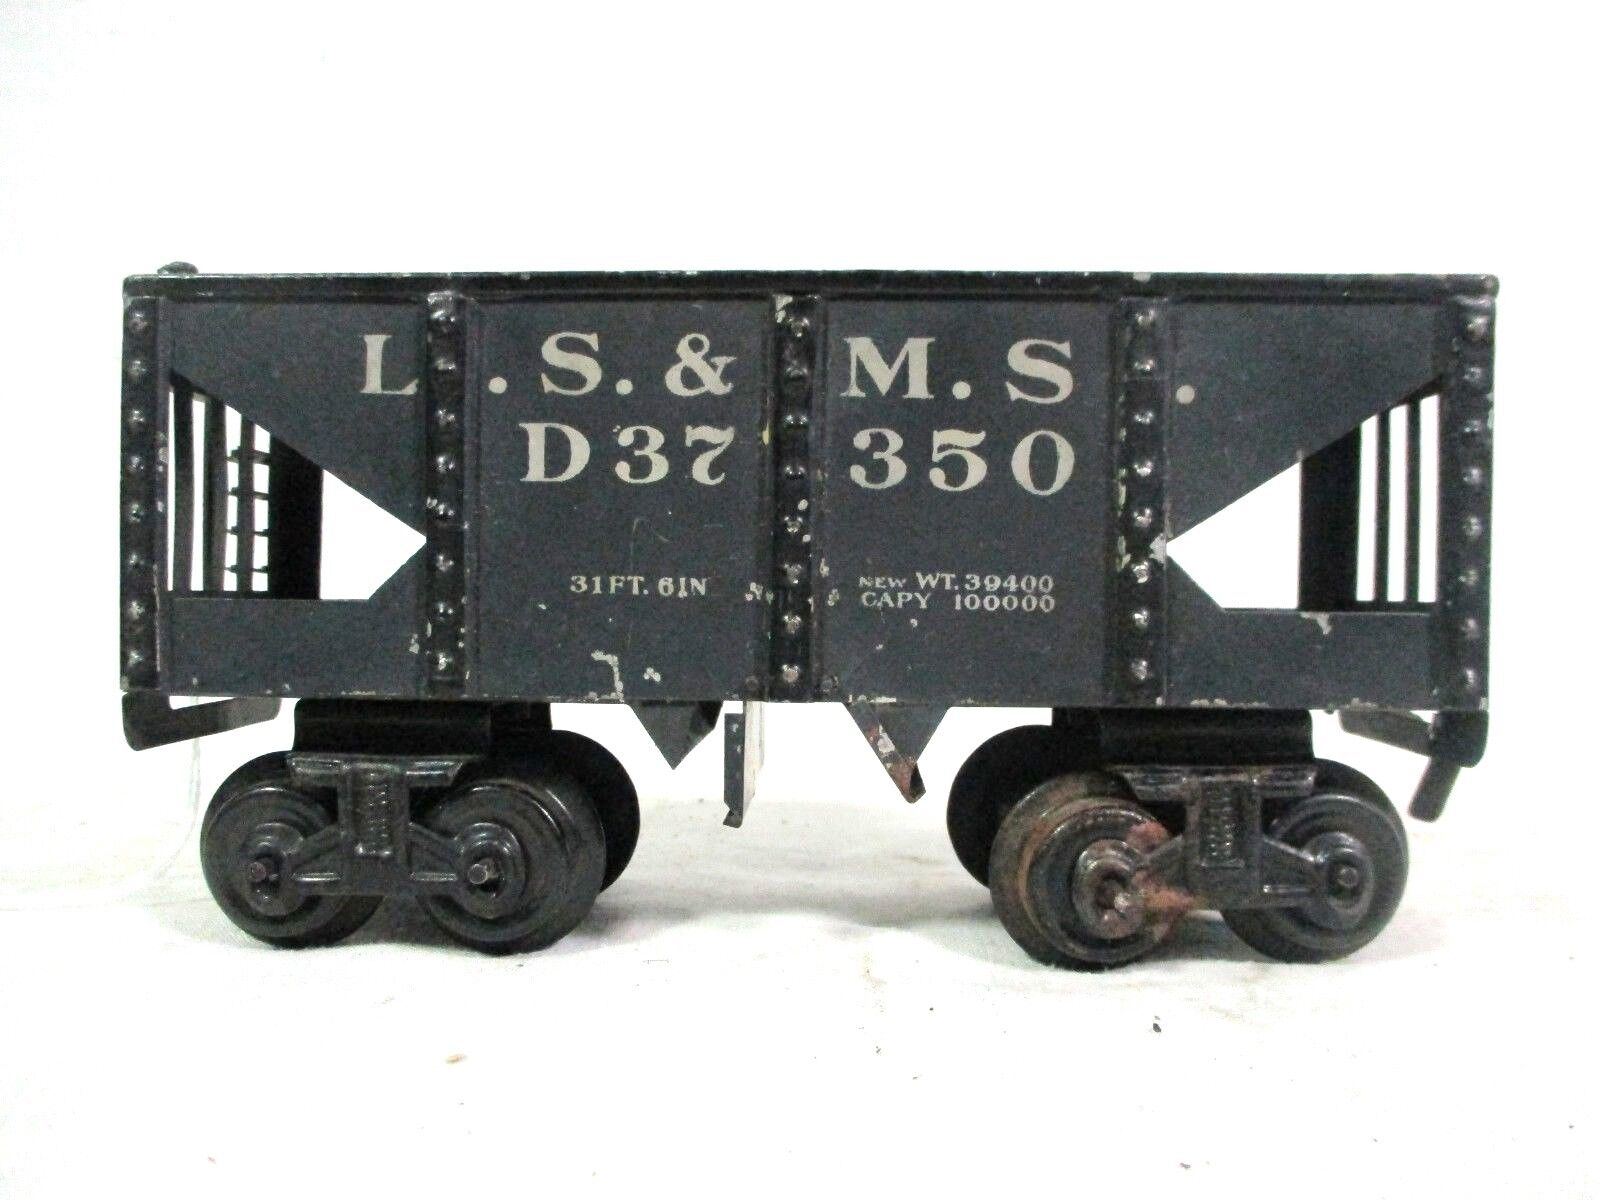 Bing O Gauge American Hopper L.S. & M.S. D37 350 Vintage Railway Train Cars B15